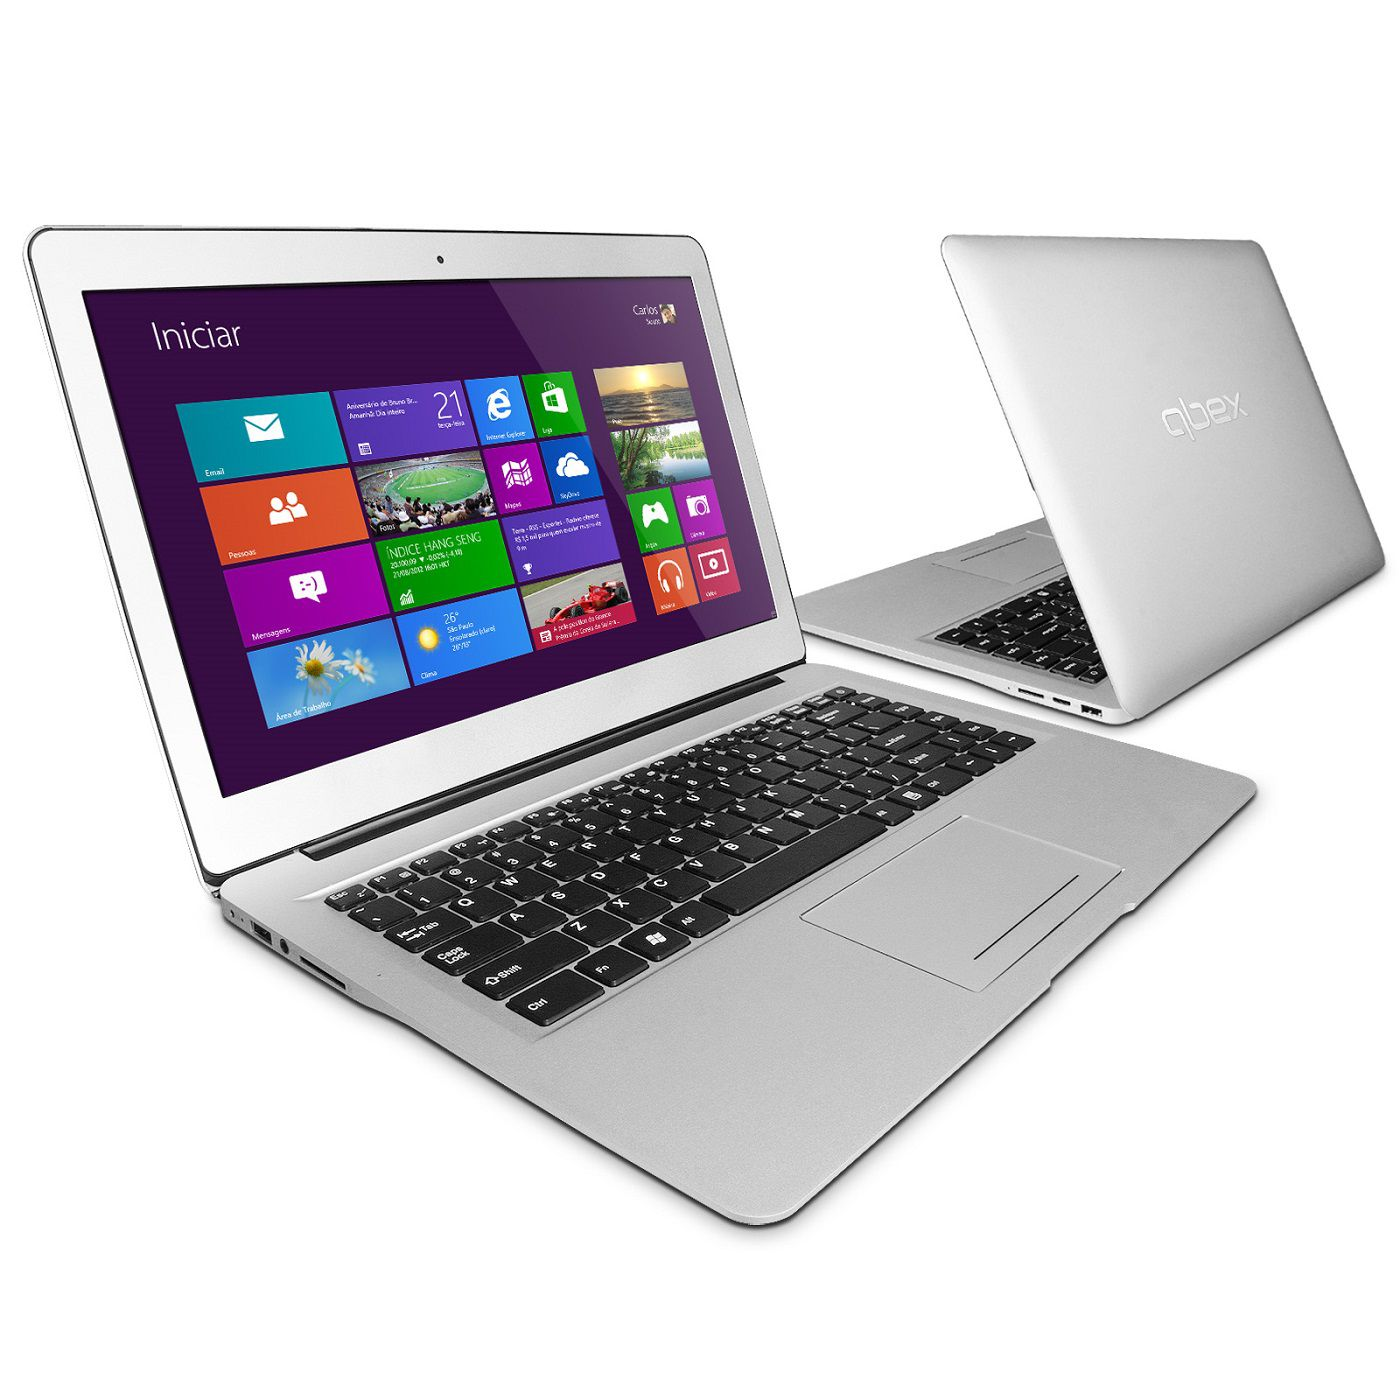 Ultrabook Qbex UX480 Core I5 4Gb HD 500GB 14' Windows 7